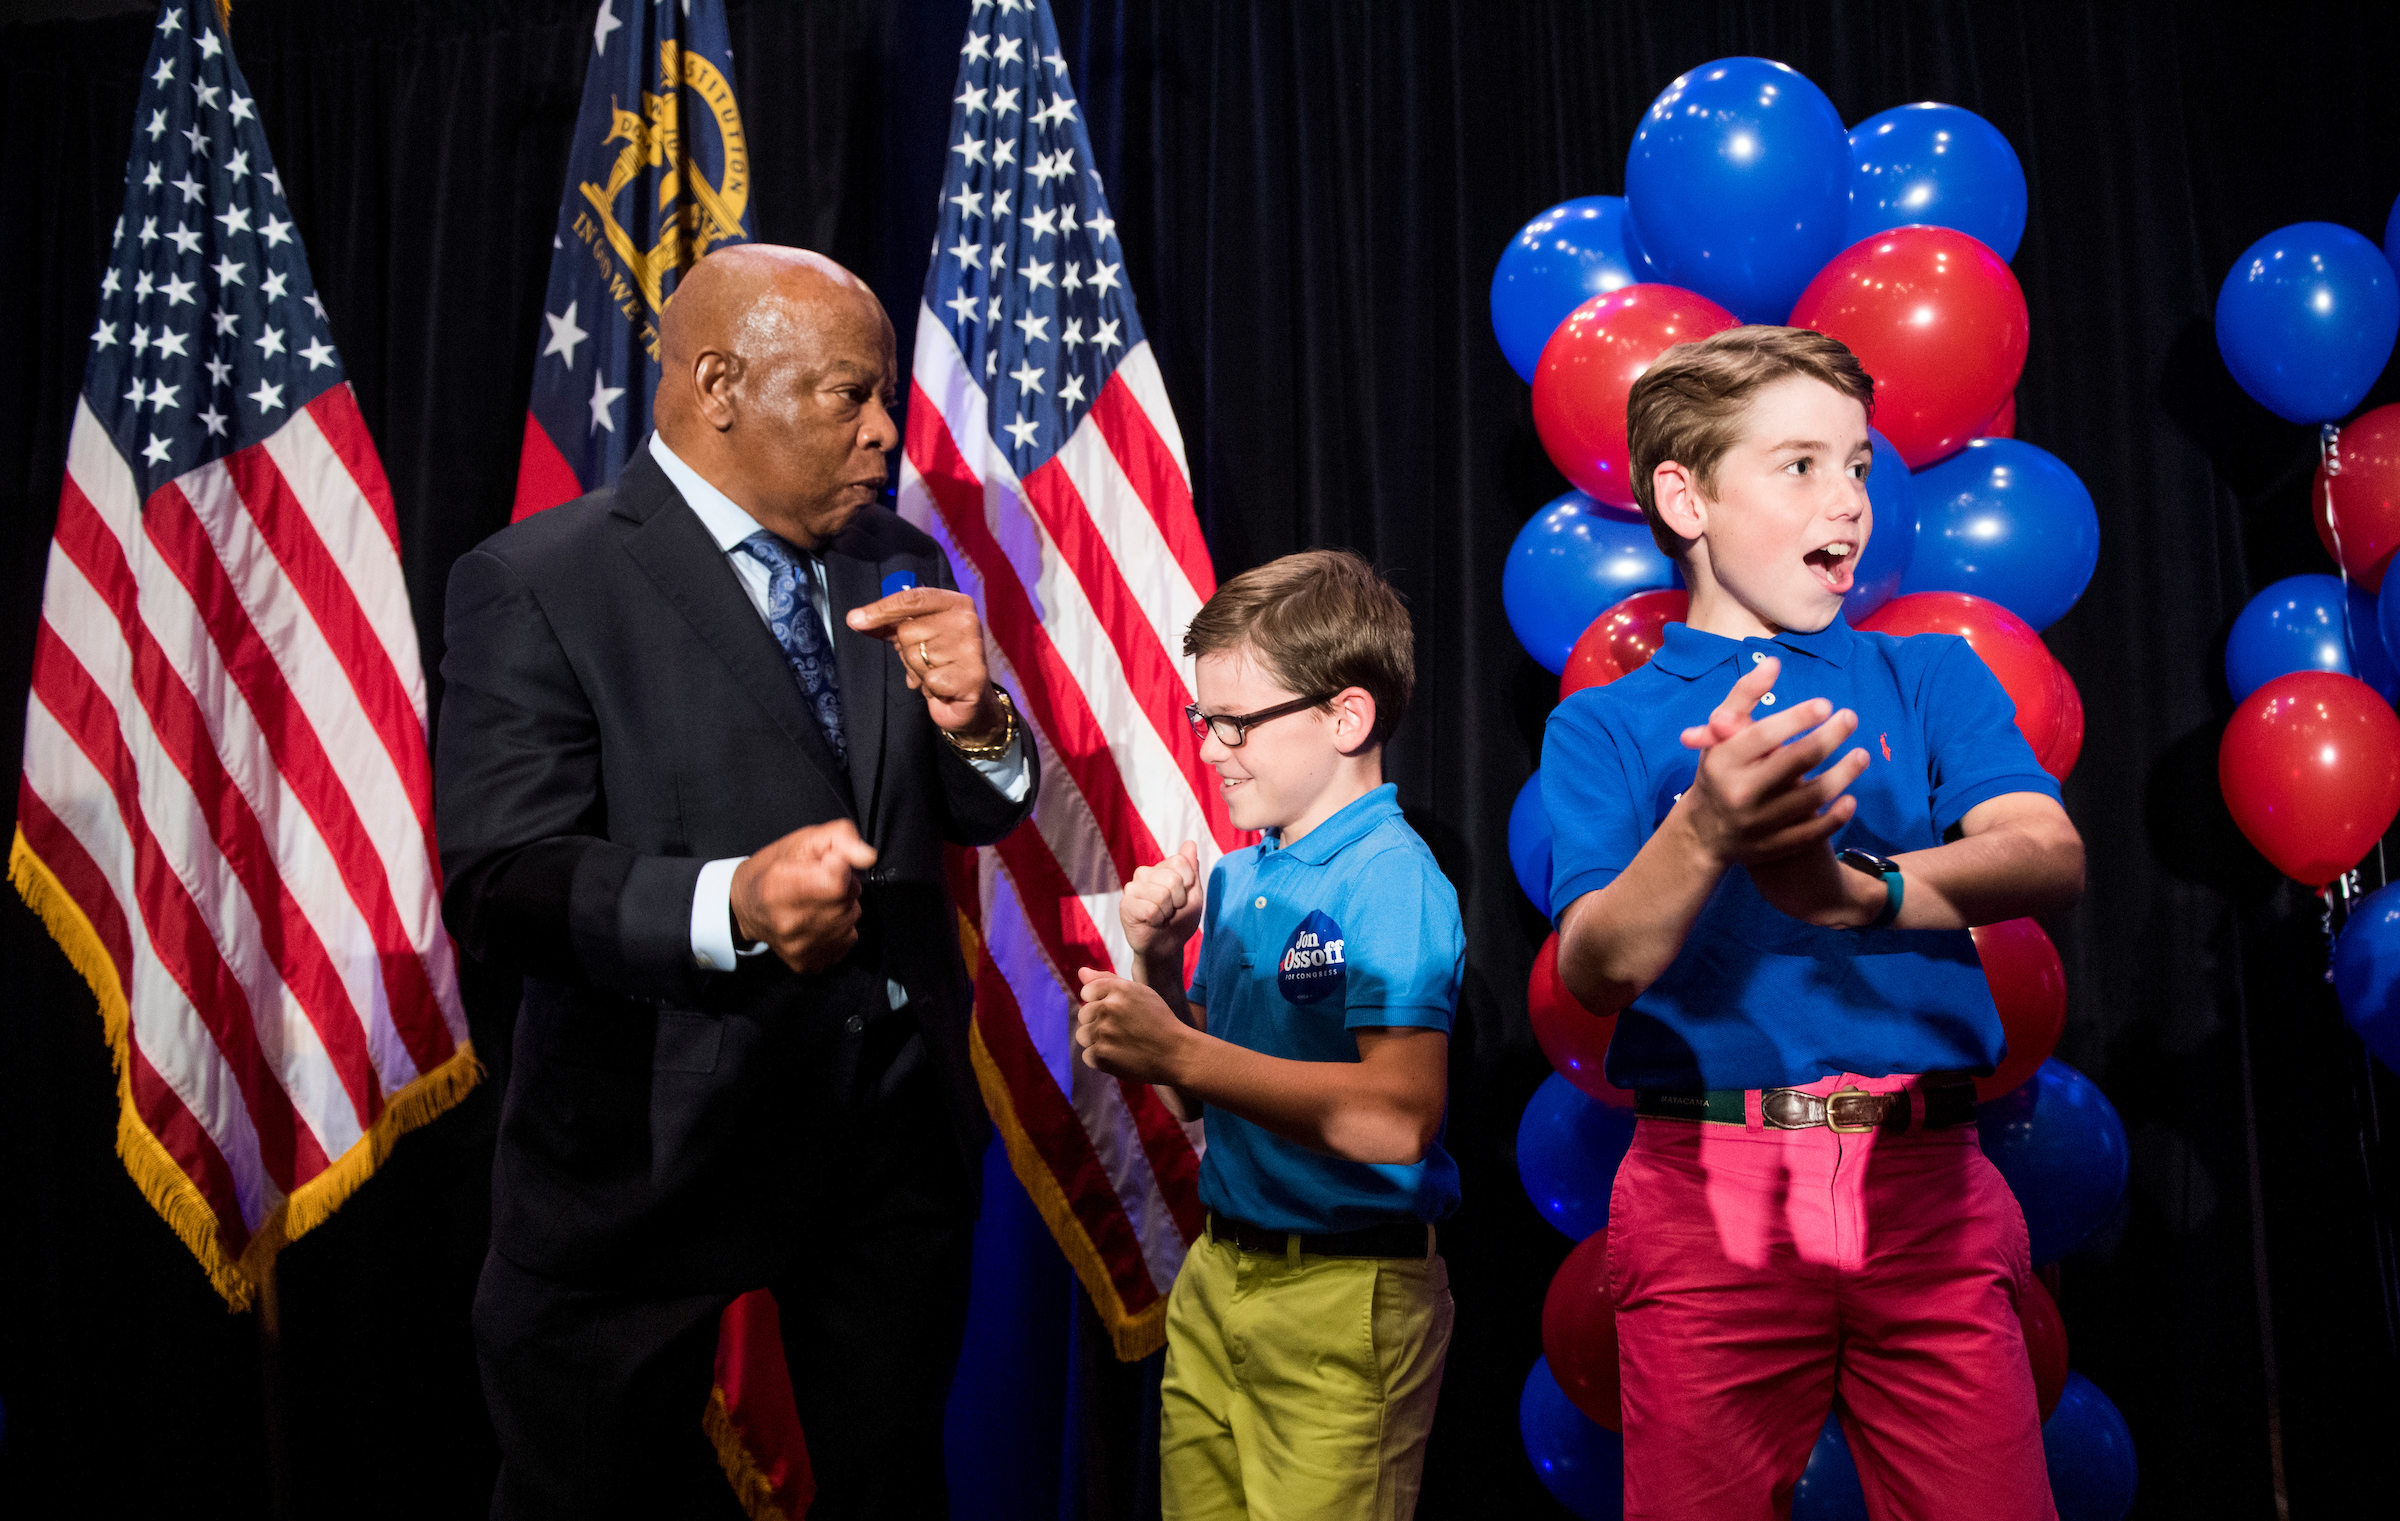 Rep. John Lewis, D-Ga., dances with children on stage before he spoke at Jon Ossoff's campaign rally on election night (Bill Clark/CQ Roll Call)